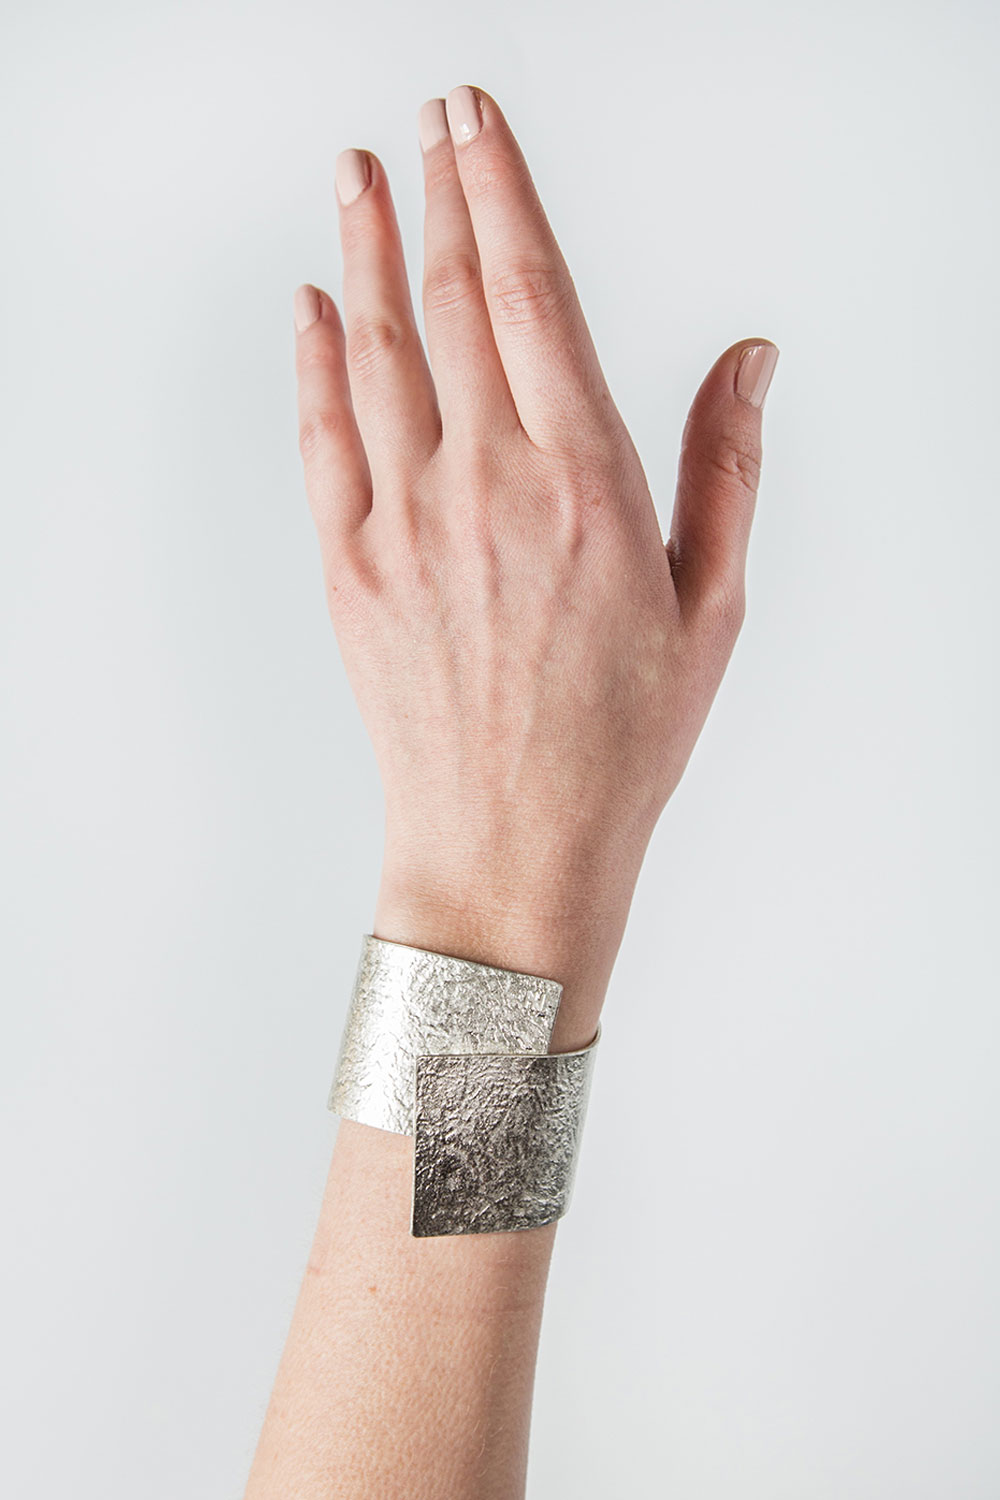 Tin Breath Bendable Bracelet in Silver  $125